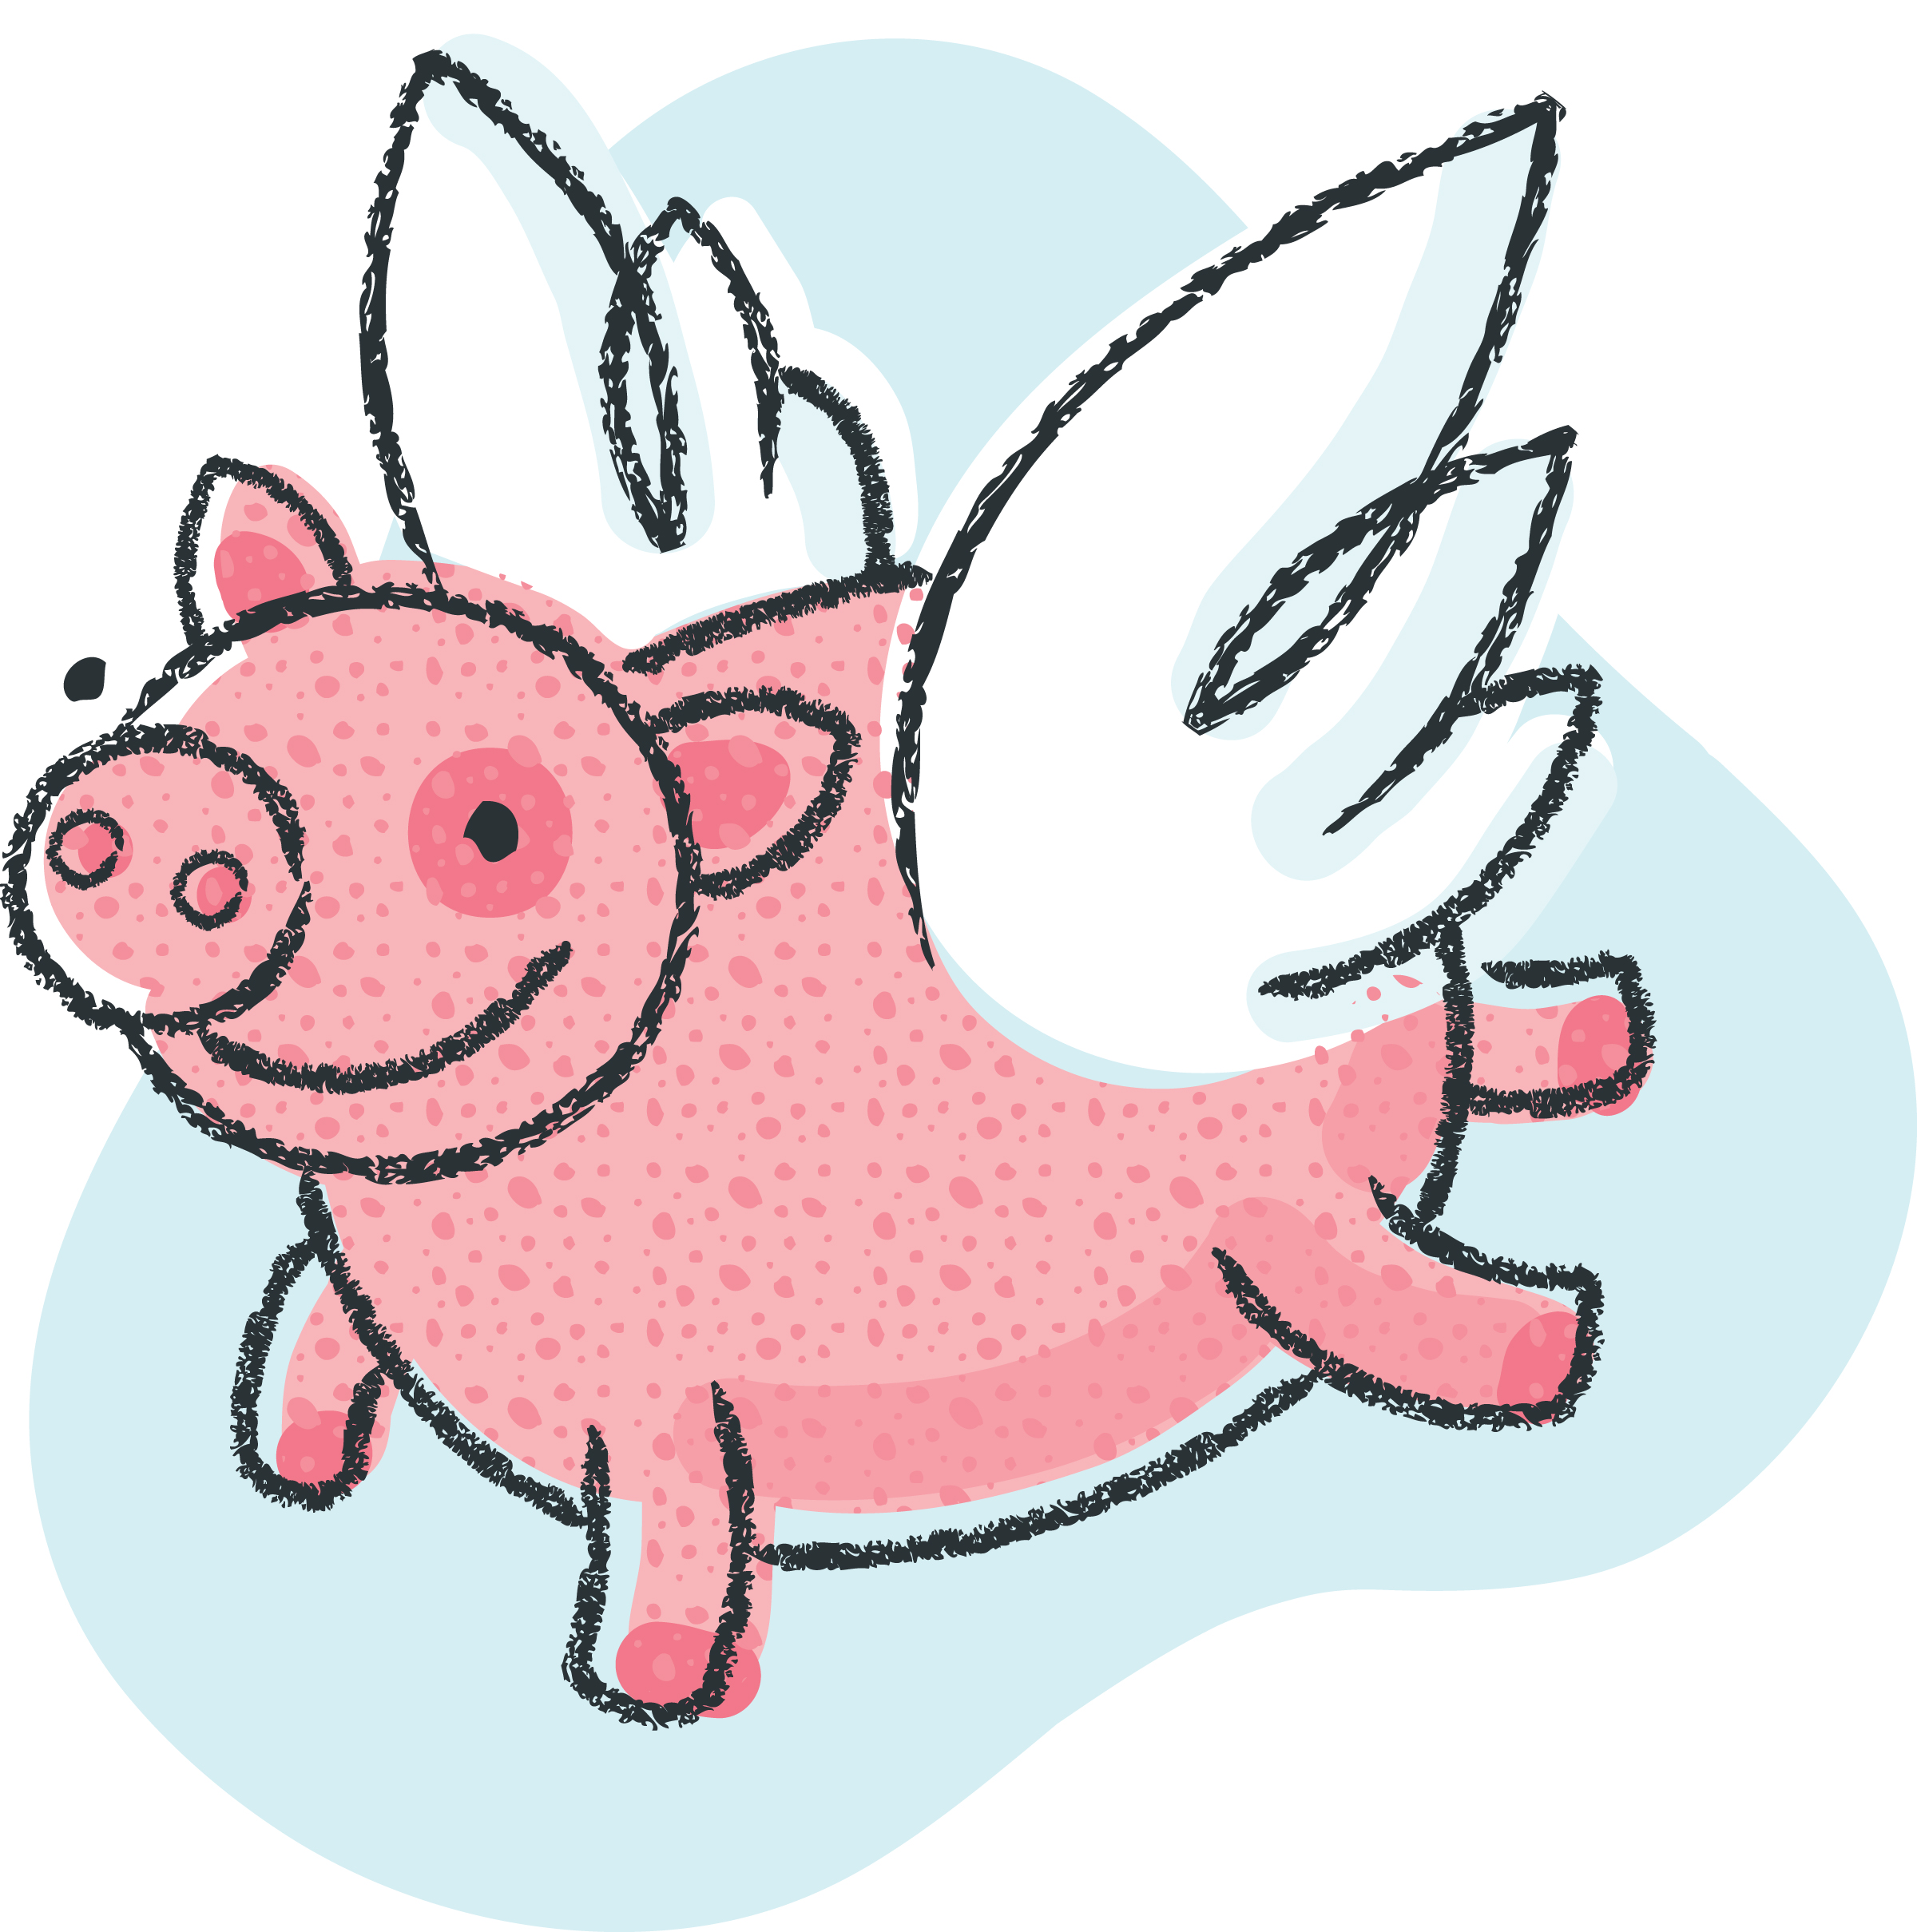 2400x2419 Free Black And White Pig Clip Art Clipart Image 4 2